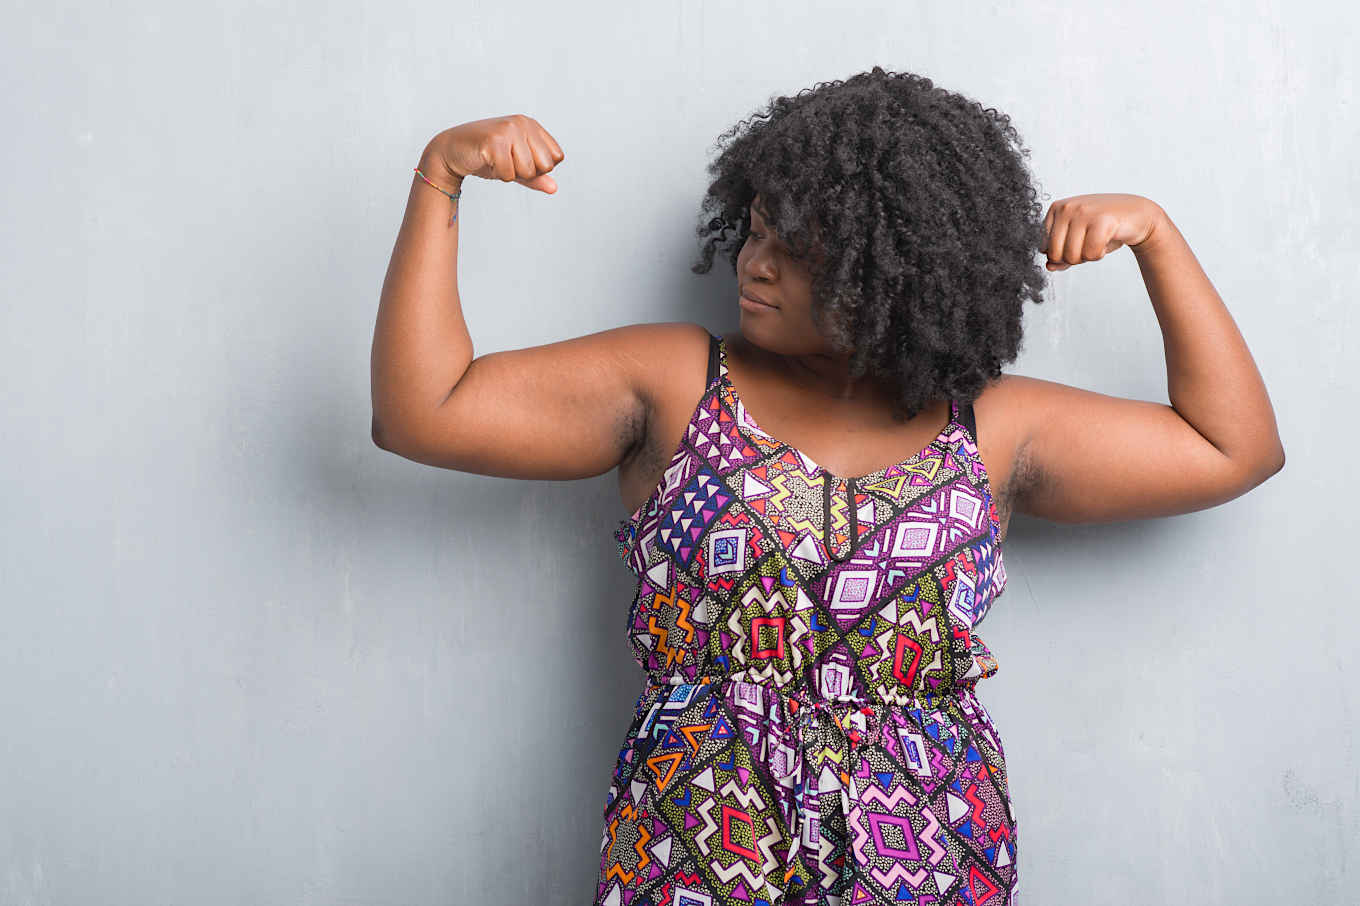 How Body Positivity Helps with Weight Loss